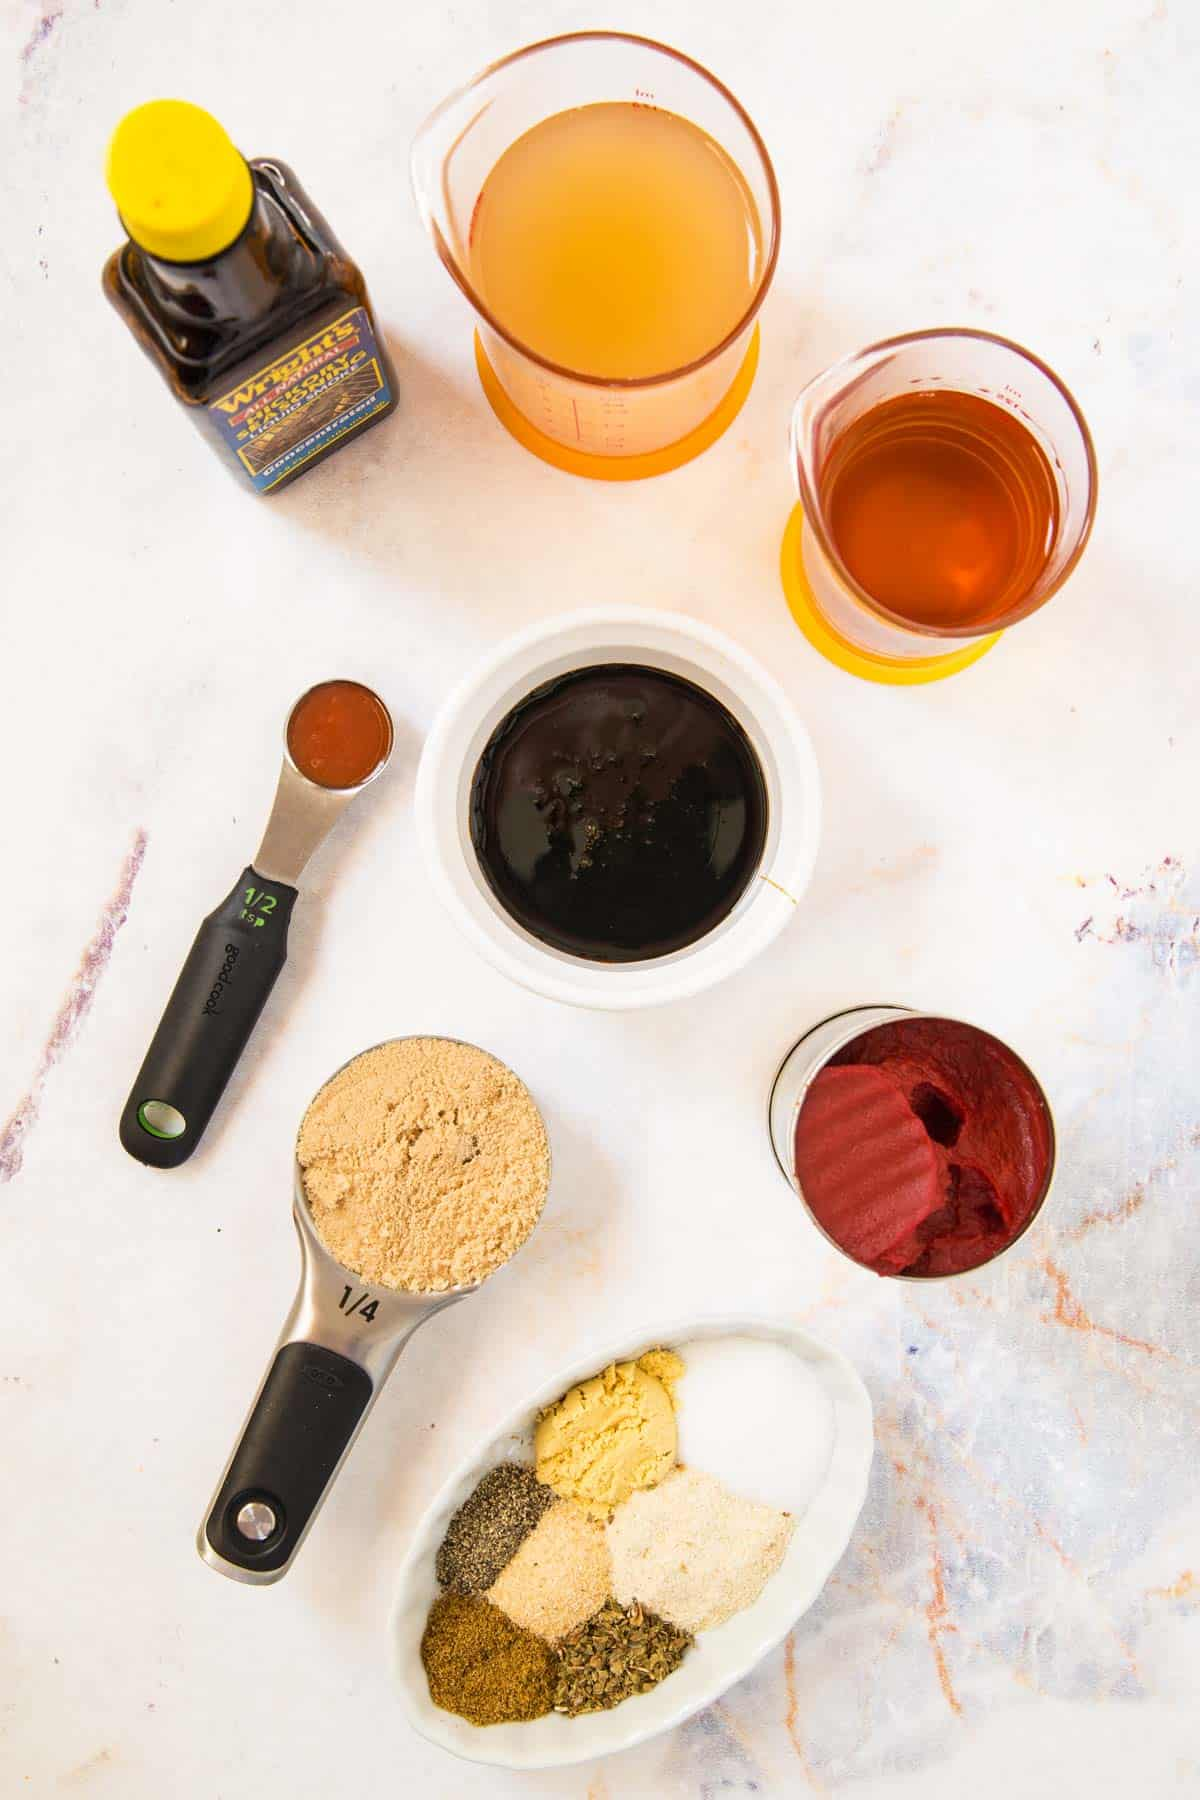 bowls and measuring cups with tomato paste, bourbon, apple cider vinegar, brown sugar, molasses, hot sauce, and different spices and seasonings, and a bottle of liquid smoke